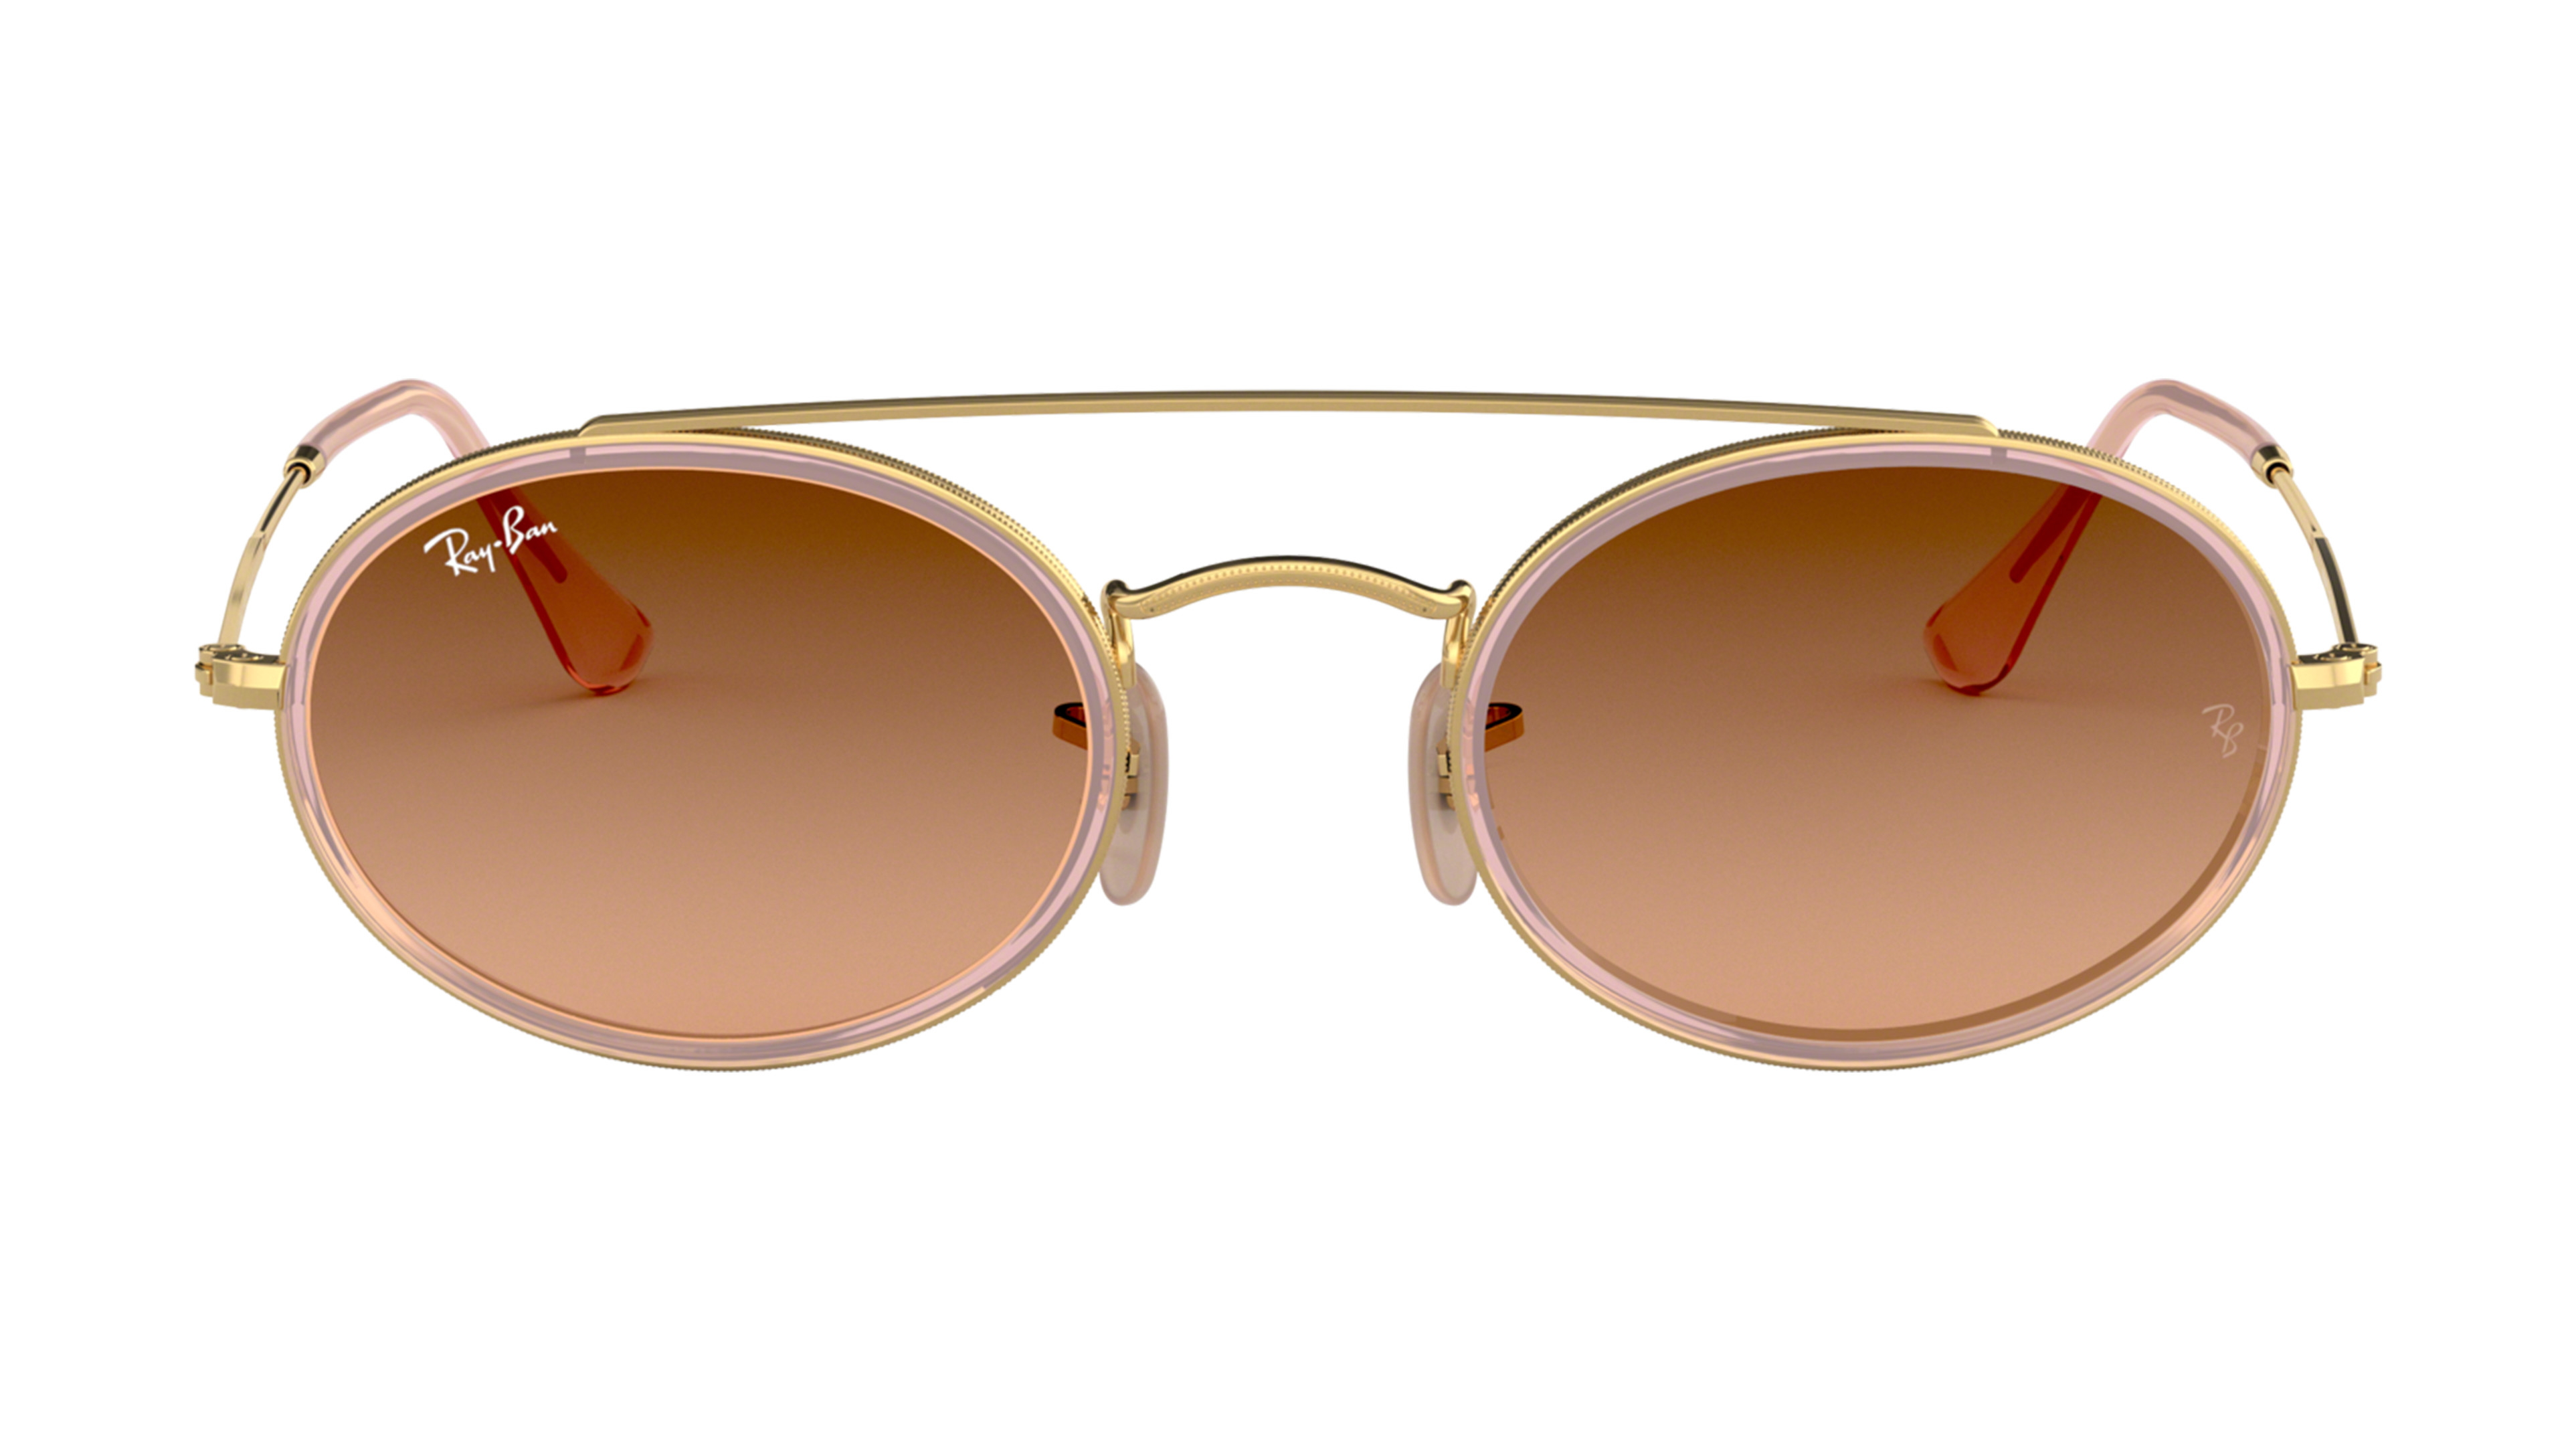 8053672970166-front-Ray-Ban-0RB3847N-9125A5